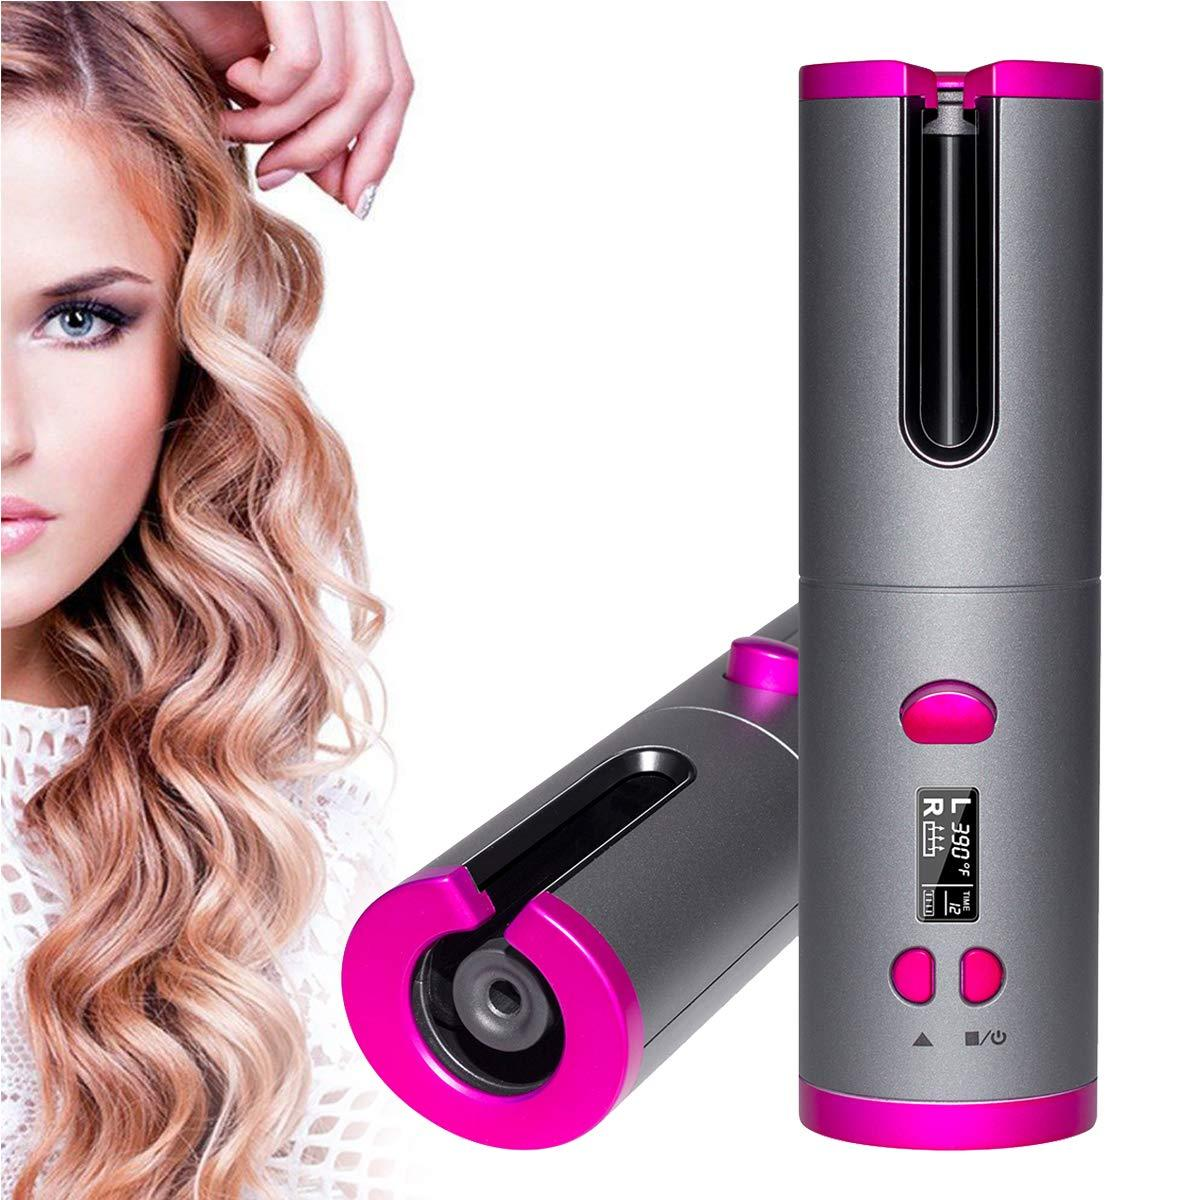 USB Charger Hair Styling Iron Wireless Automatic Hair Curler